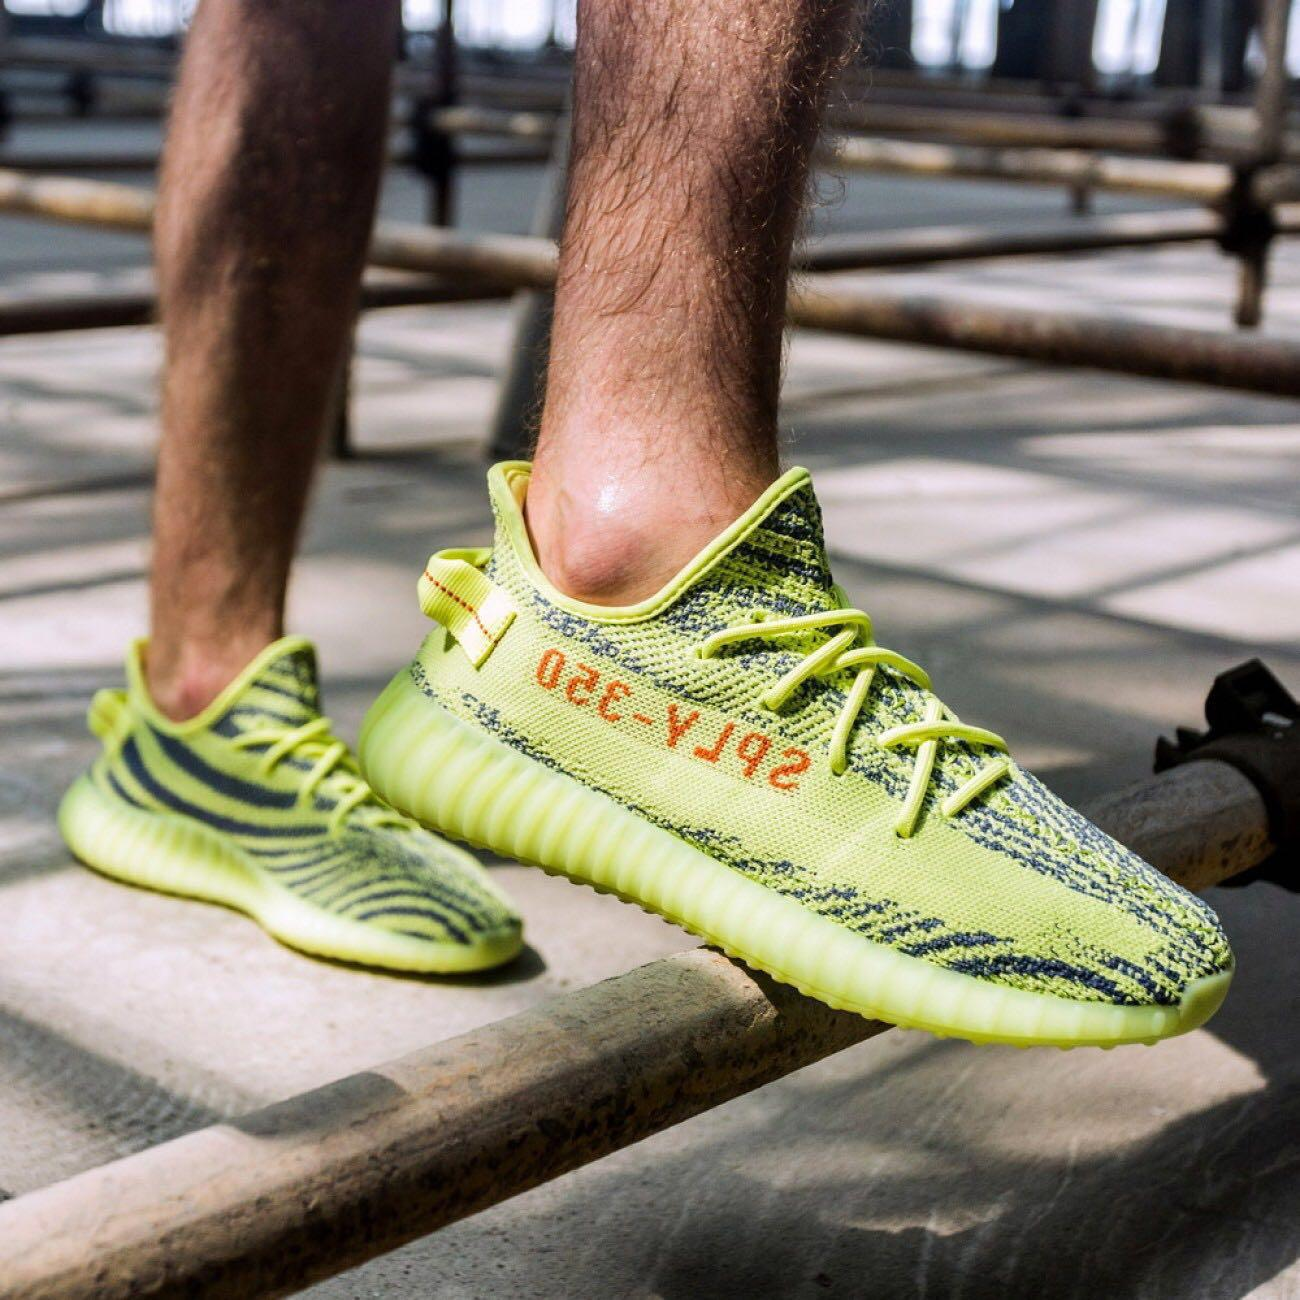 low priced 23c32 4f7bf Yeezy Boost 350 V2 Semi Frozen Yellow, Men's Fashion ...